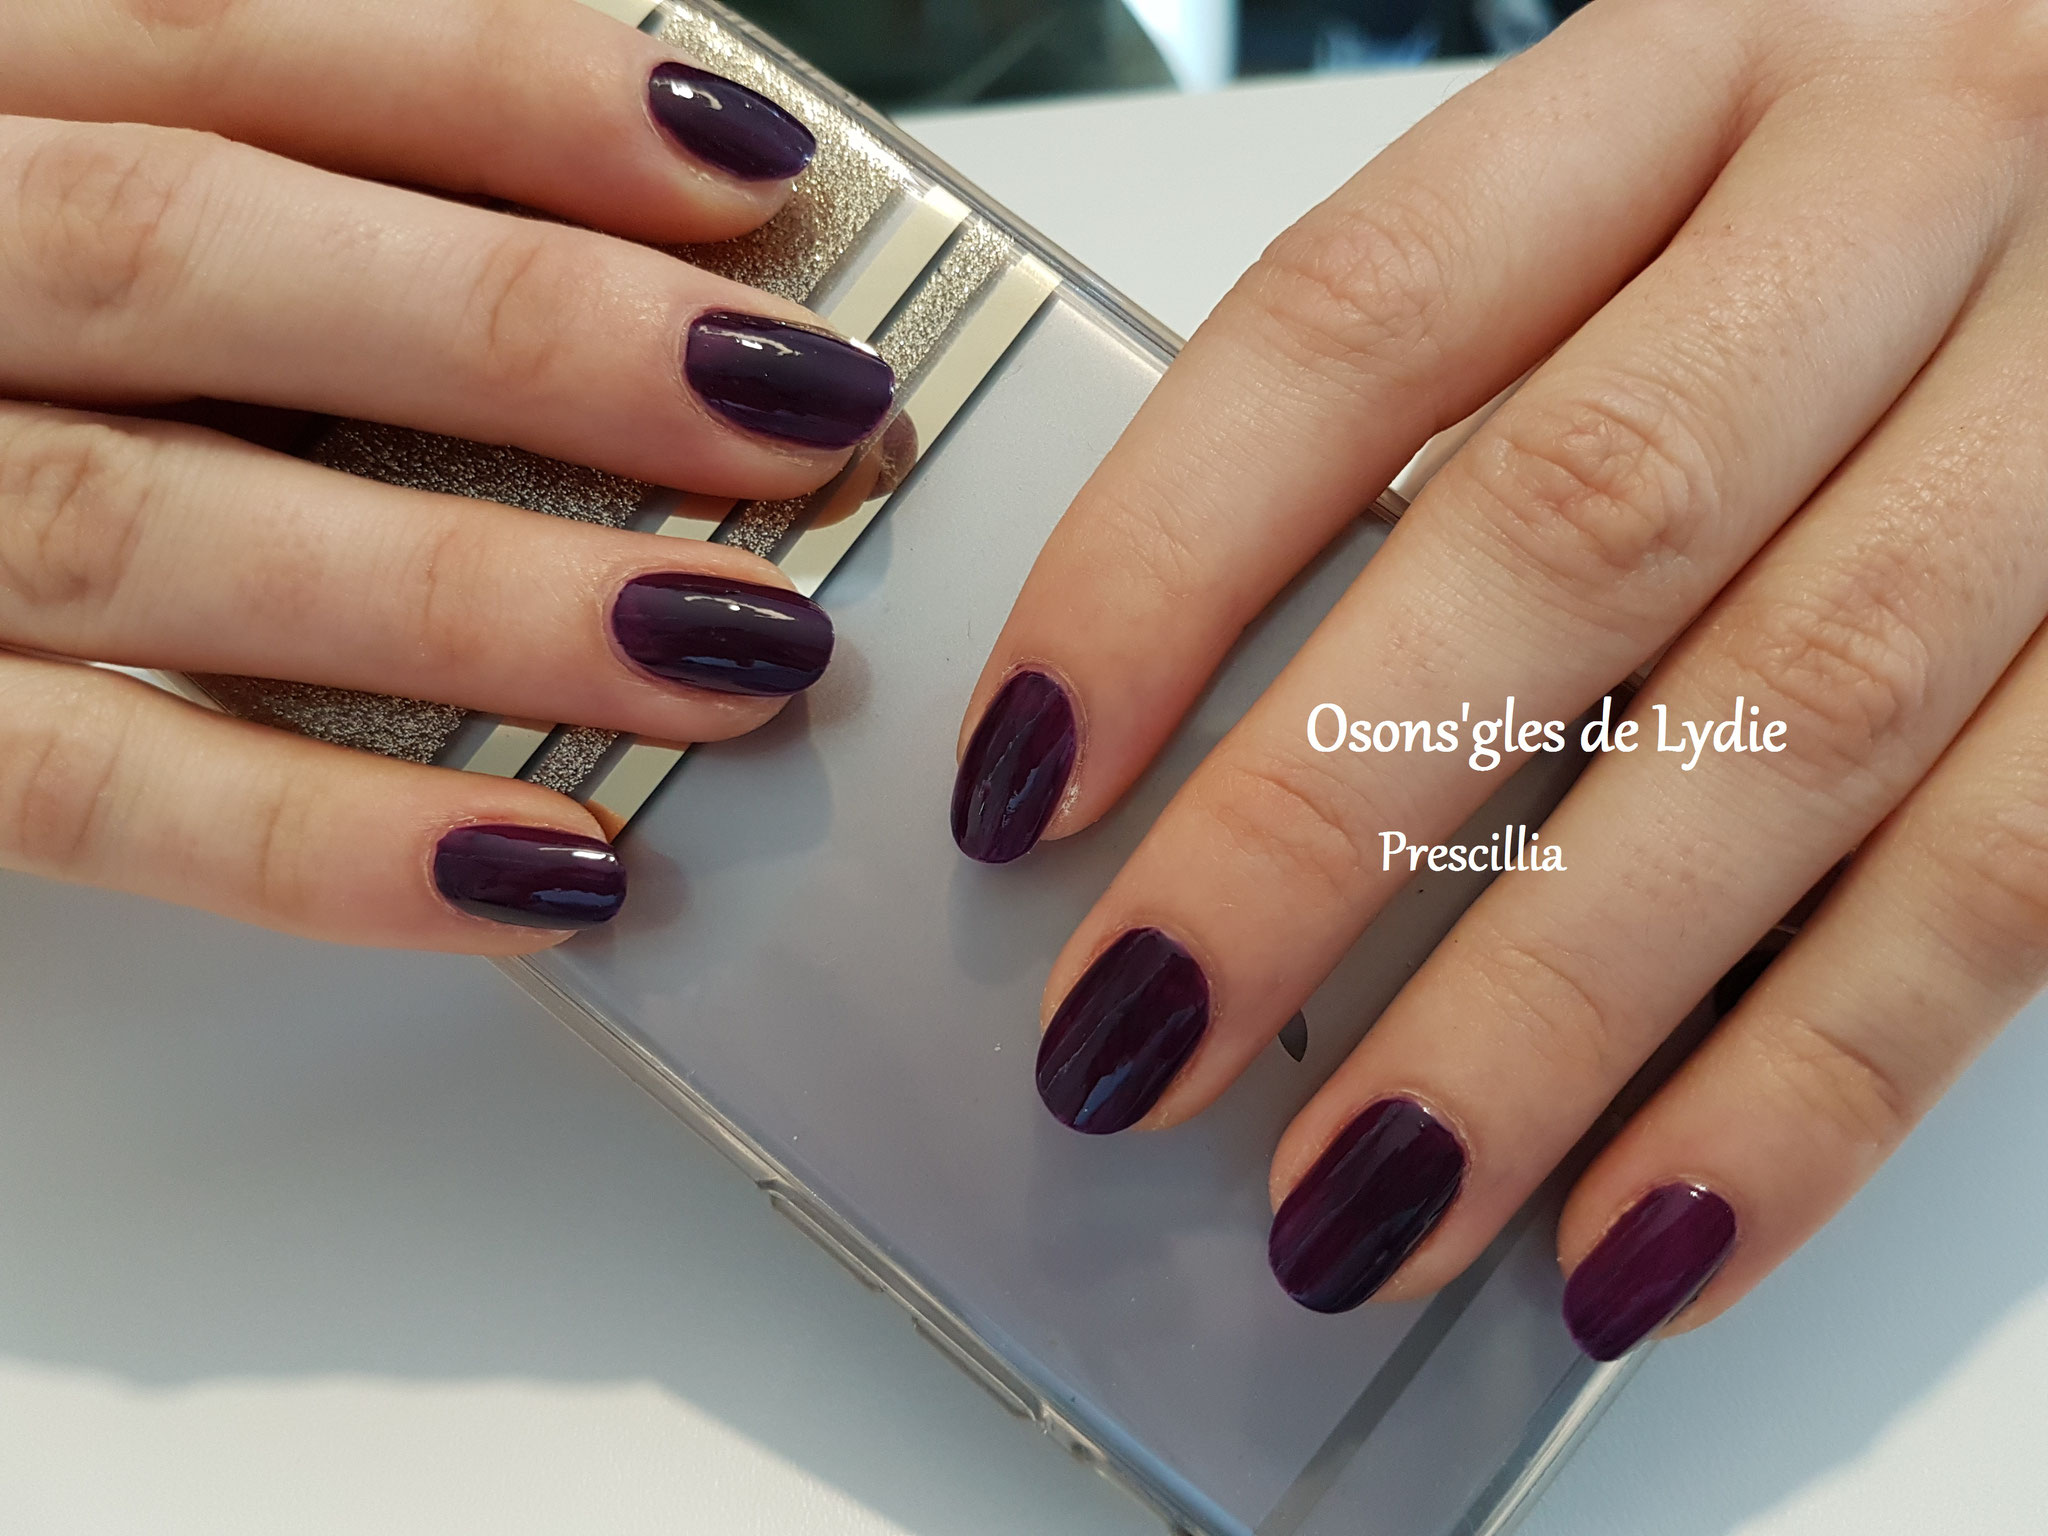 Vernis simple prune : Prescillia